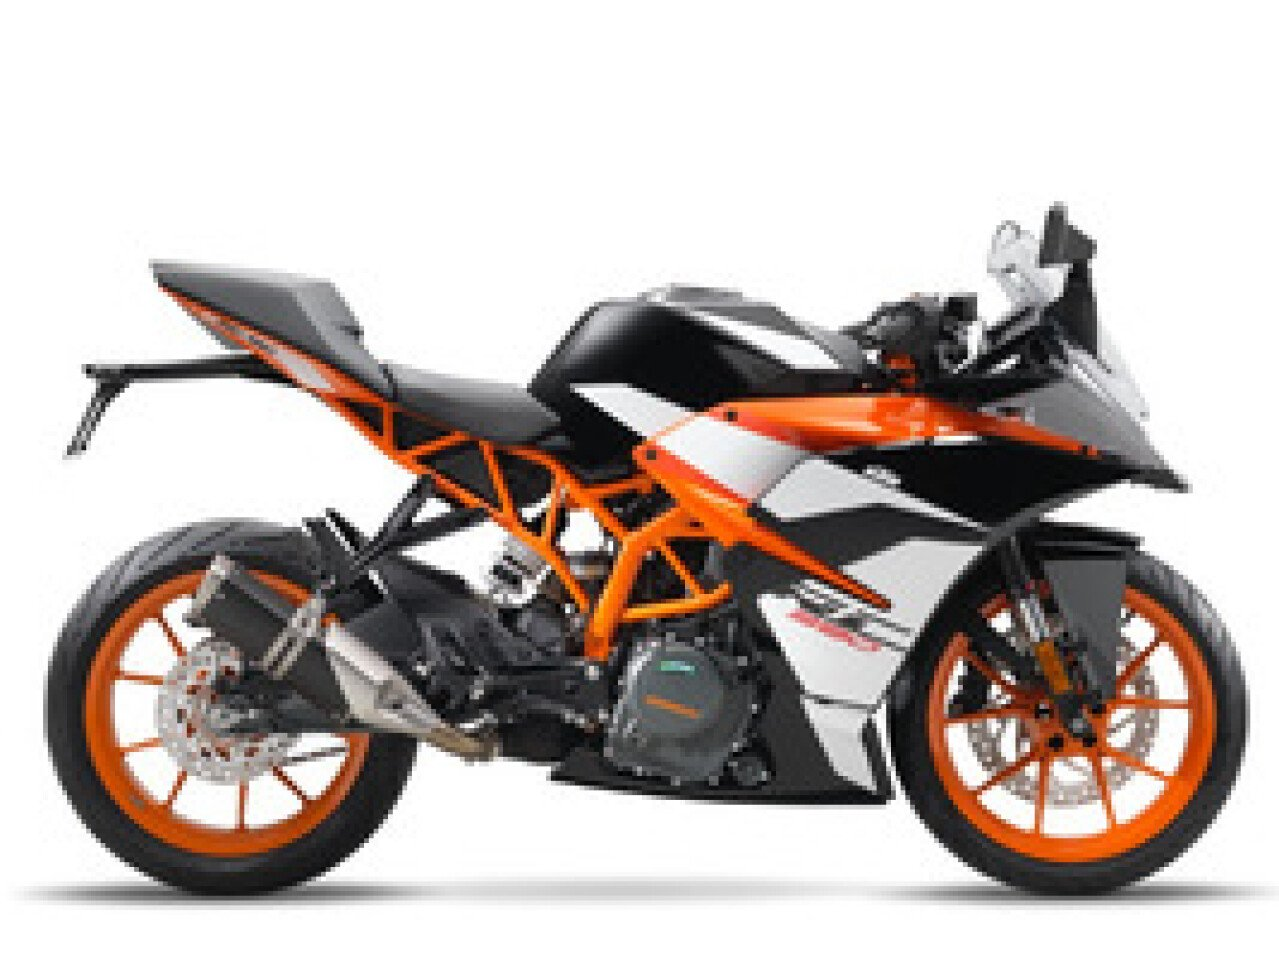 Ktm Motorcycles For Sale Fresno Ca >> 2017 Ktm Rc 390 For Sale Near Fresno California 93710 Motorcycles